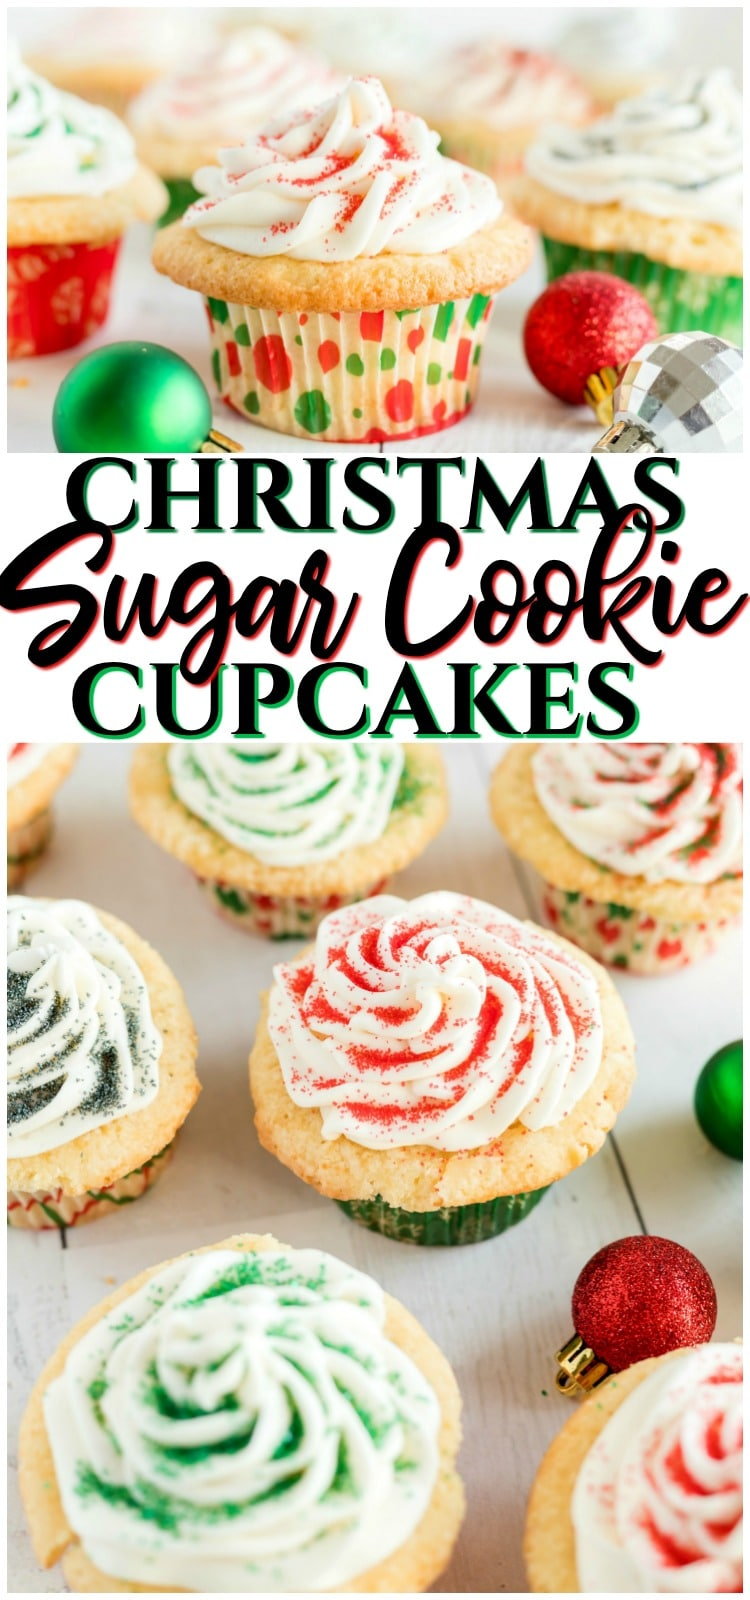 Sugar Cookie Cupcakes are cupcakes that taste just like sugar cookies! The best flavors of two incredible desserts combine in these soft and sweet vanilla frosted cupcakes. #sugarcookies #cupcakes #baking #dessert #Christmas #holidays #dessert #recipe from BUTTER WITH A SIDE OF BREAD